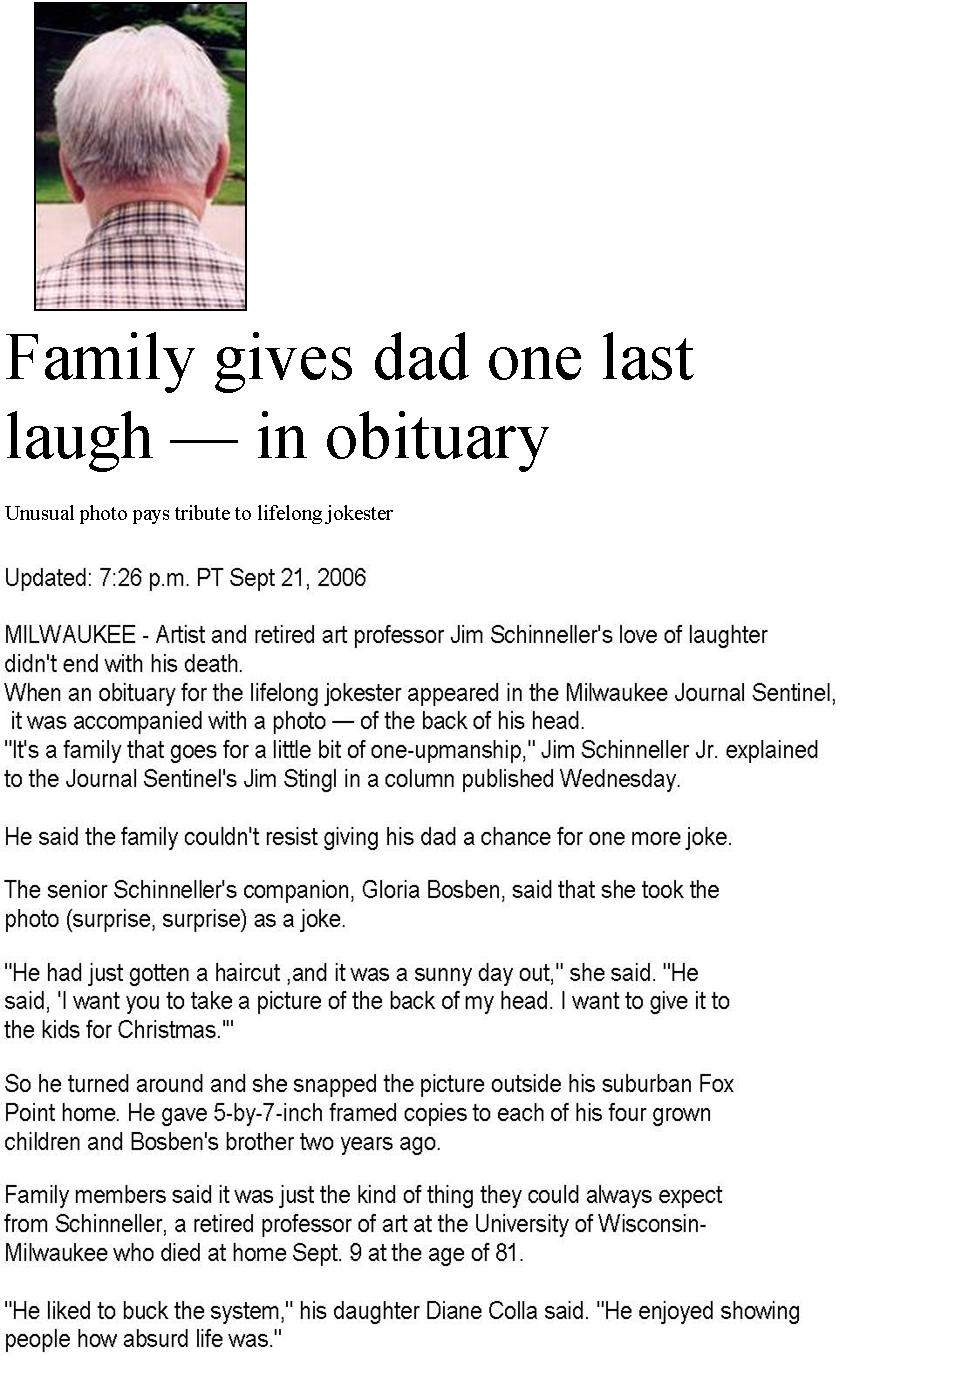 sample obituary for mother Melo.in tandem.co